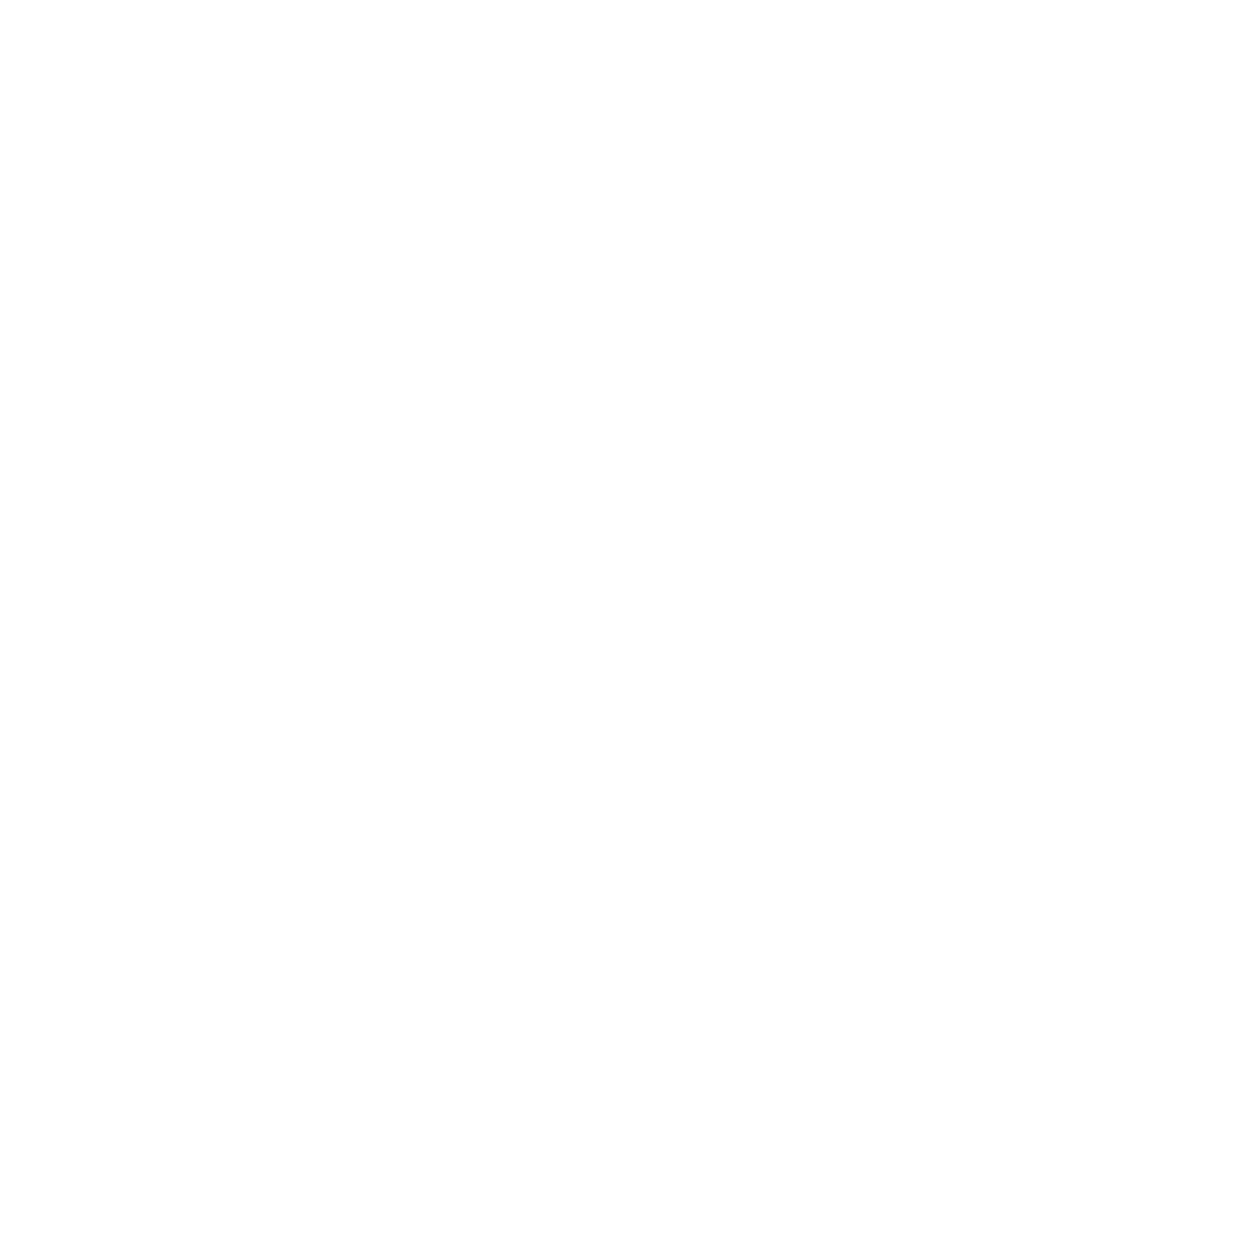 Brickmakers Quality Charter 3-Star Certification